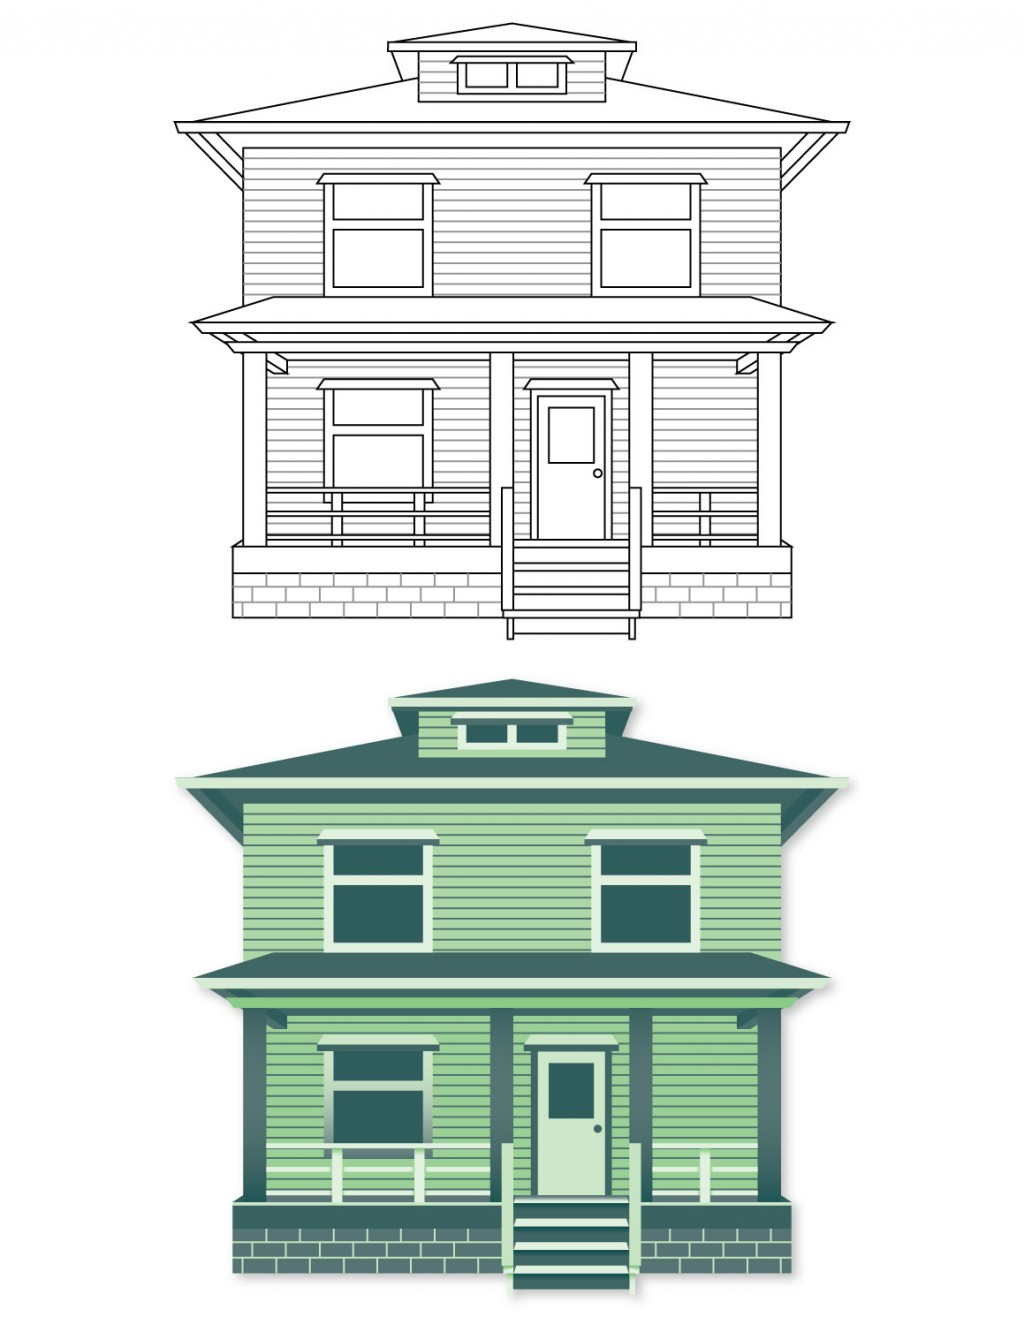 Two illustrations. Top: line art building, Bottom: color filled building. Green house.